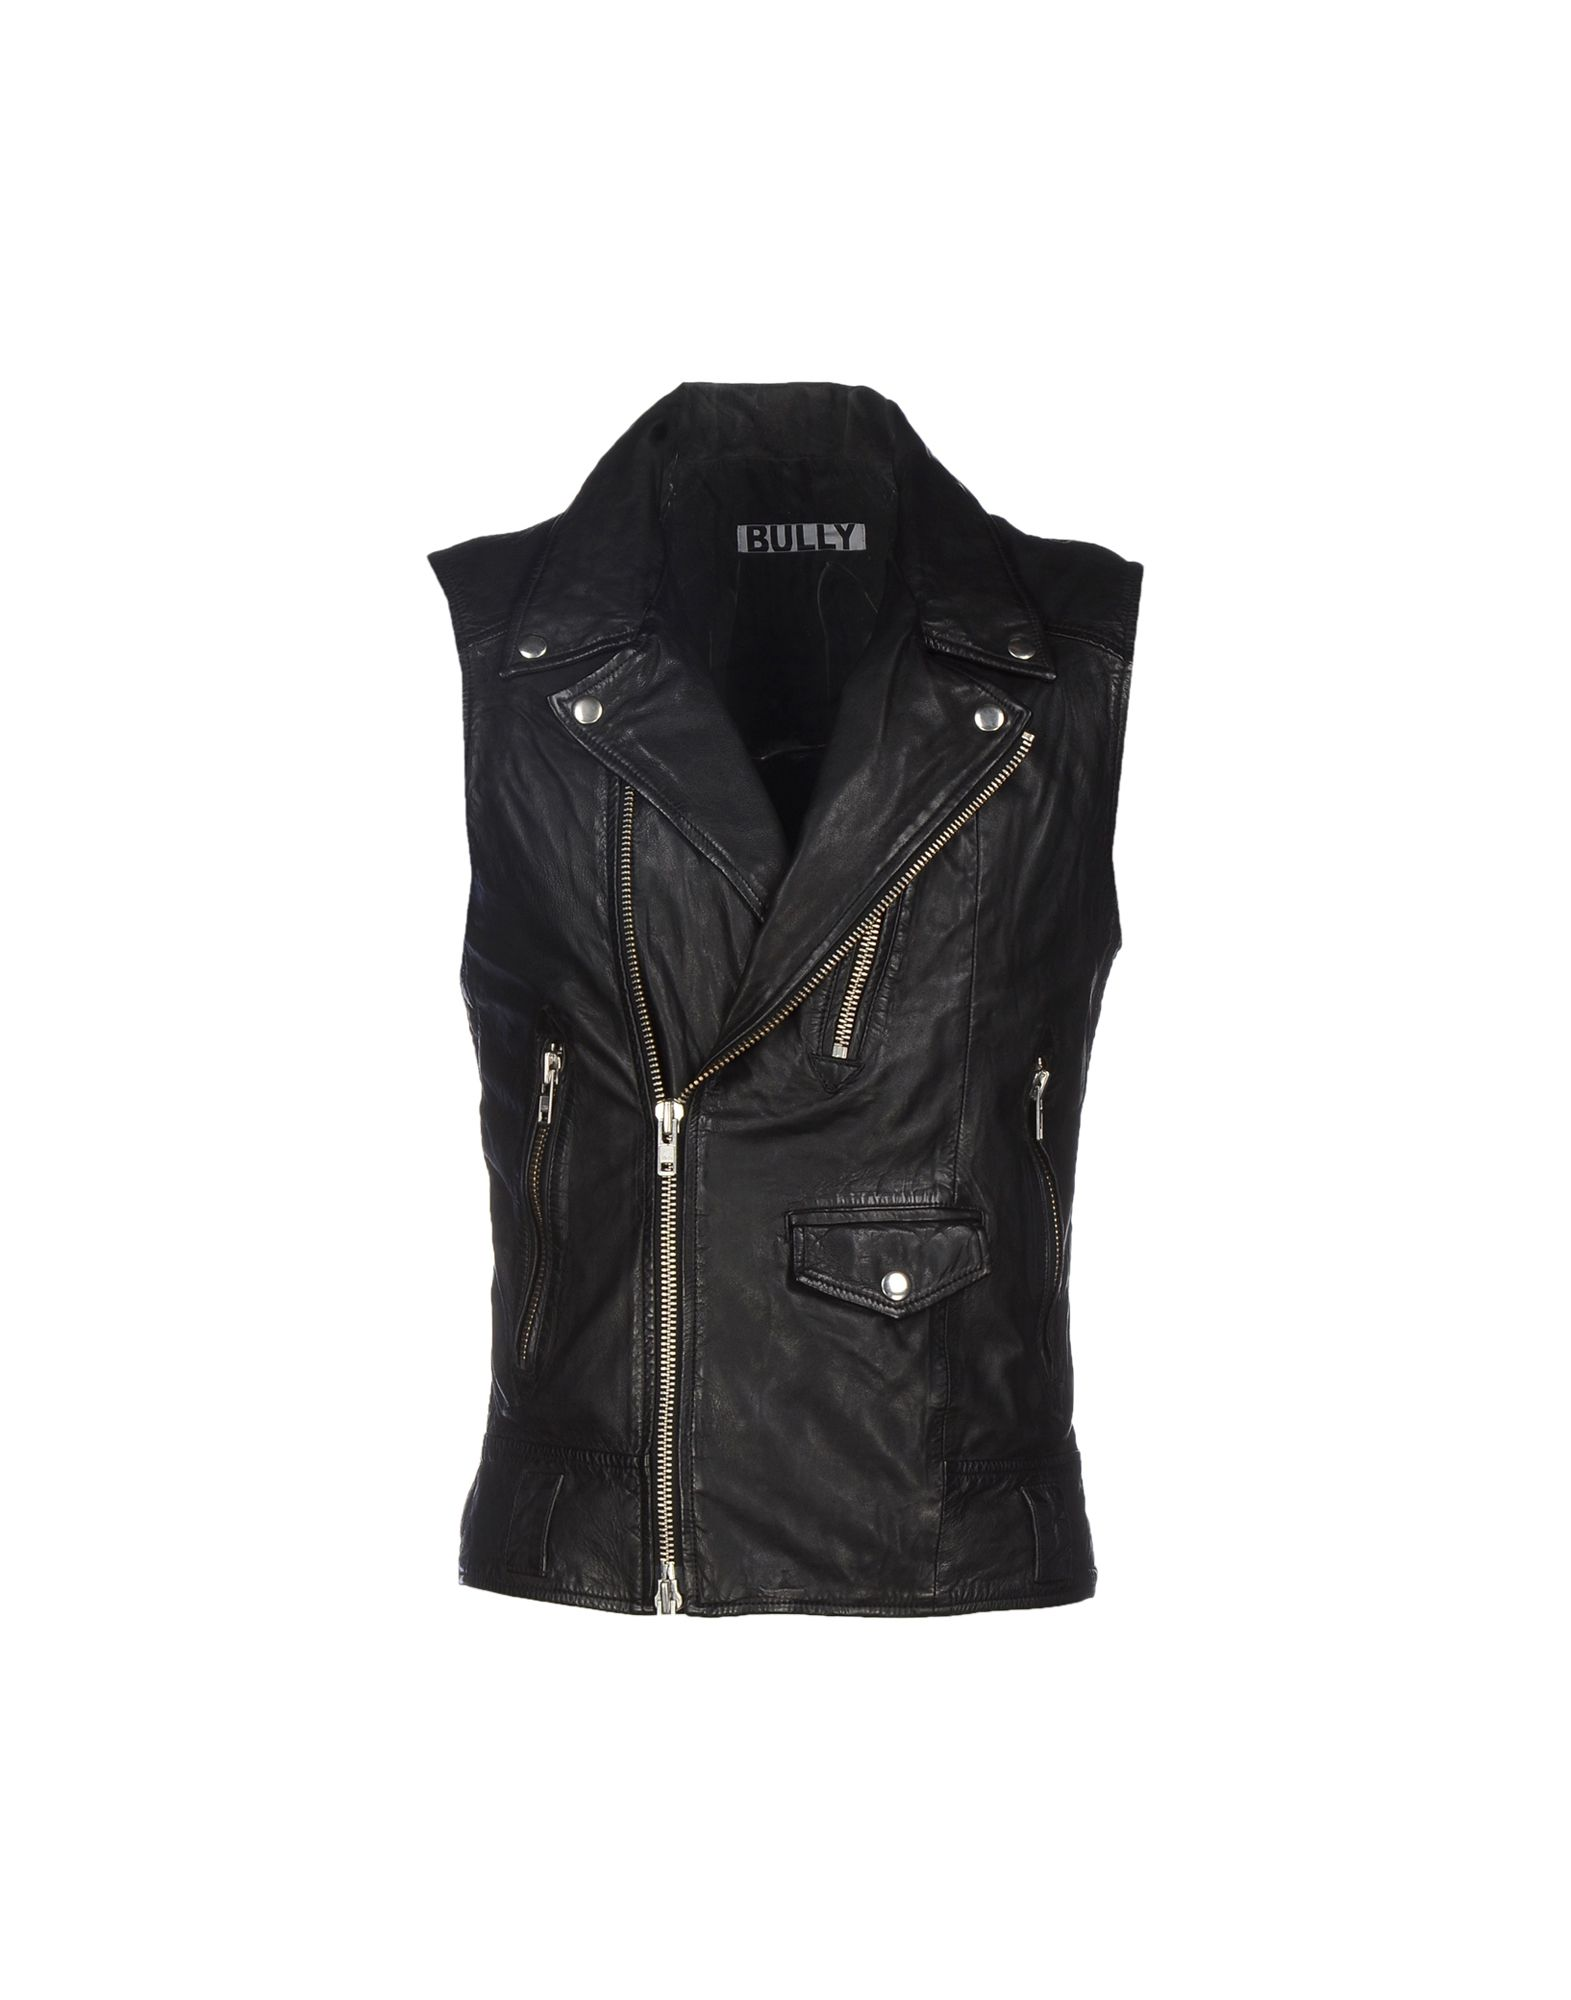 Gilet Bully Donna - Acquista online su